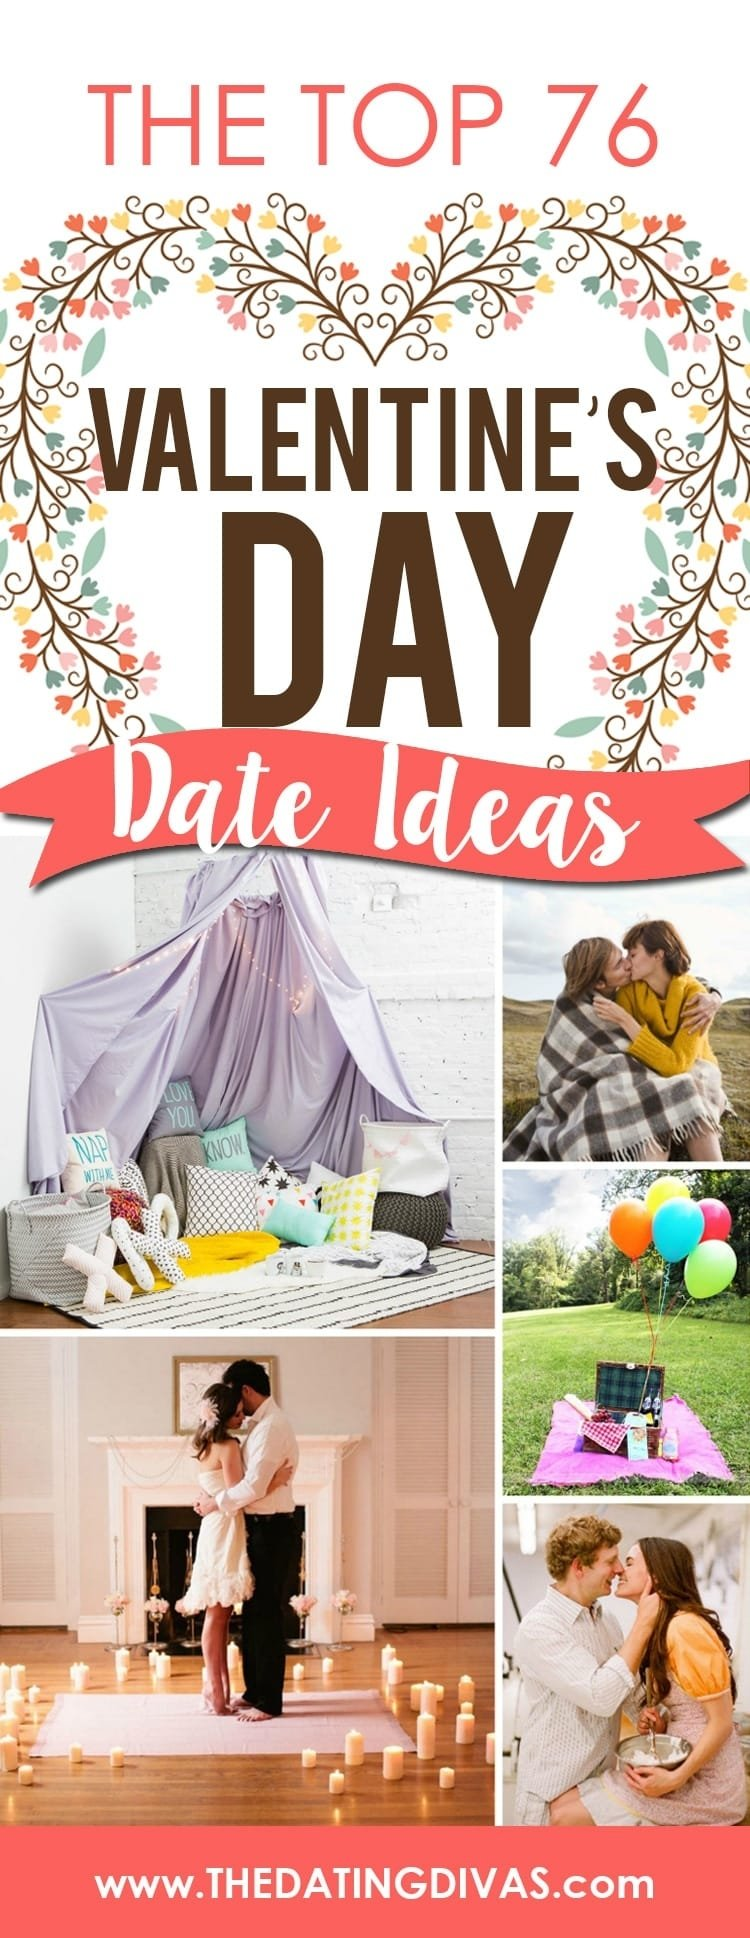 10 Perfect Good Valentines Day Date Ideas the top 76 valentines day date ideas from the dating divas 2020